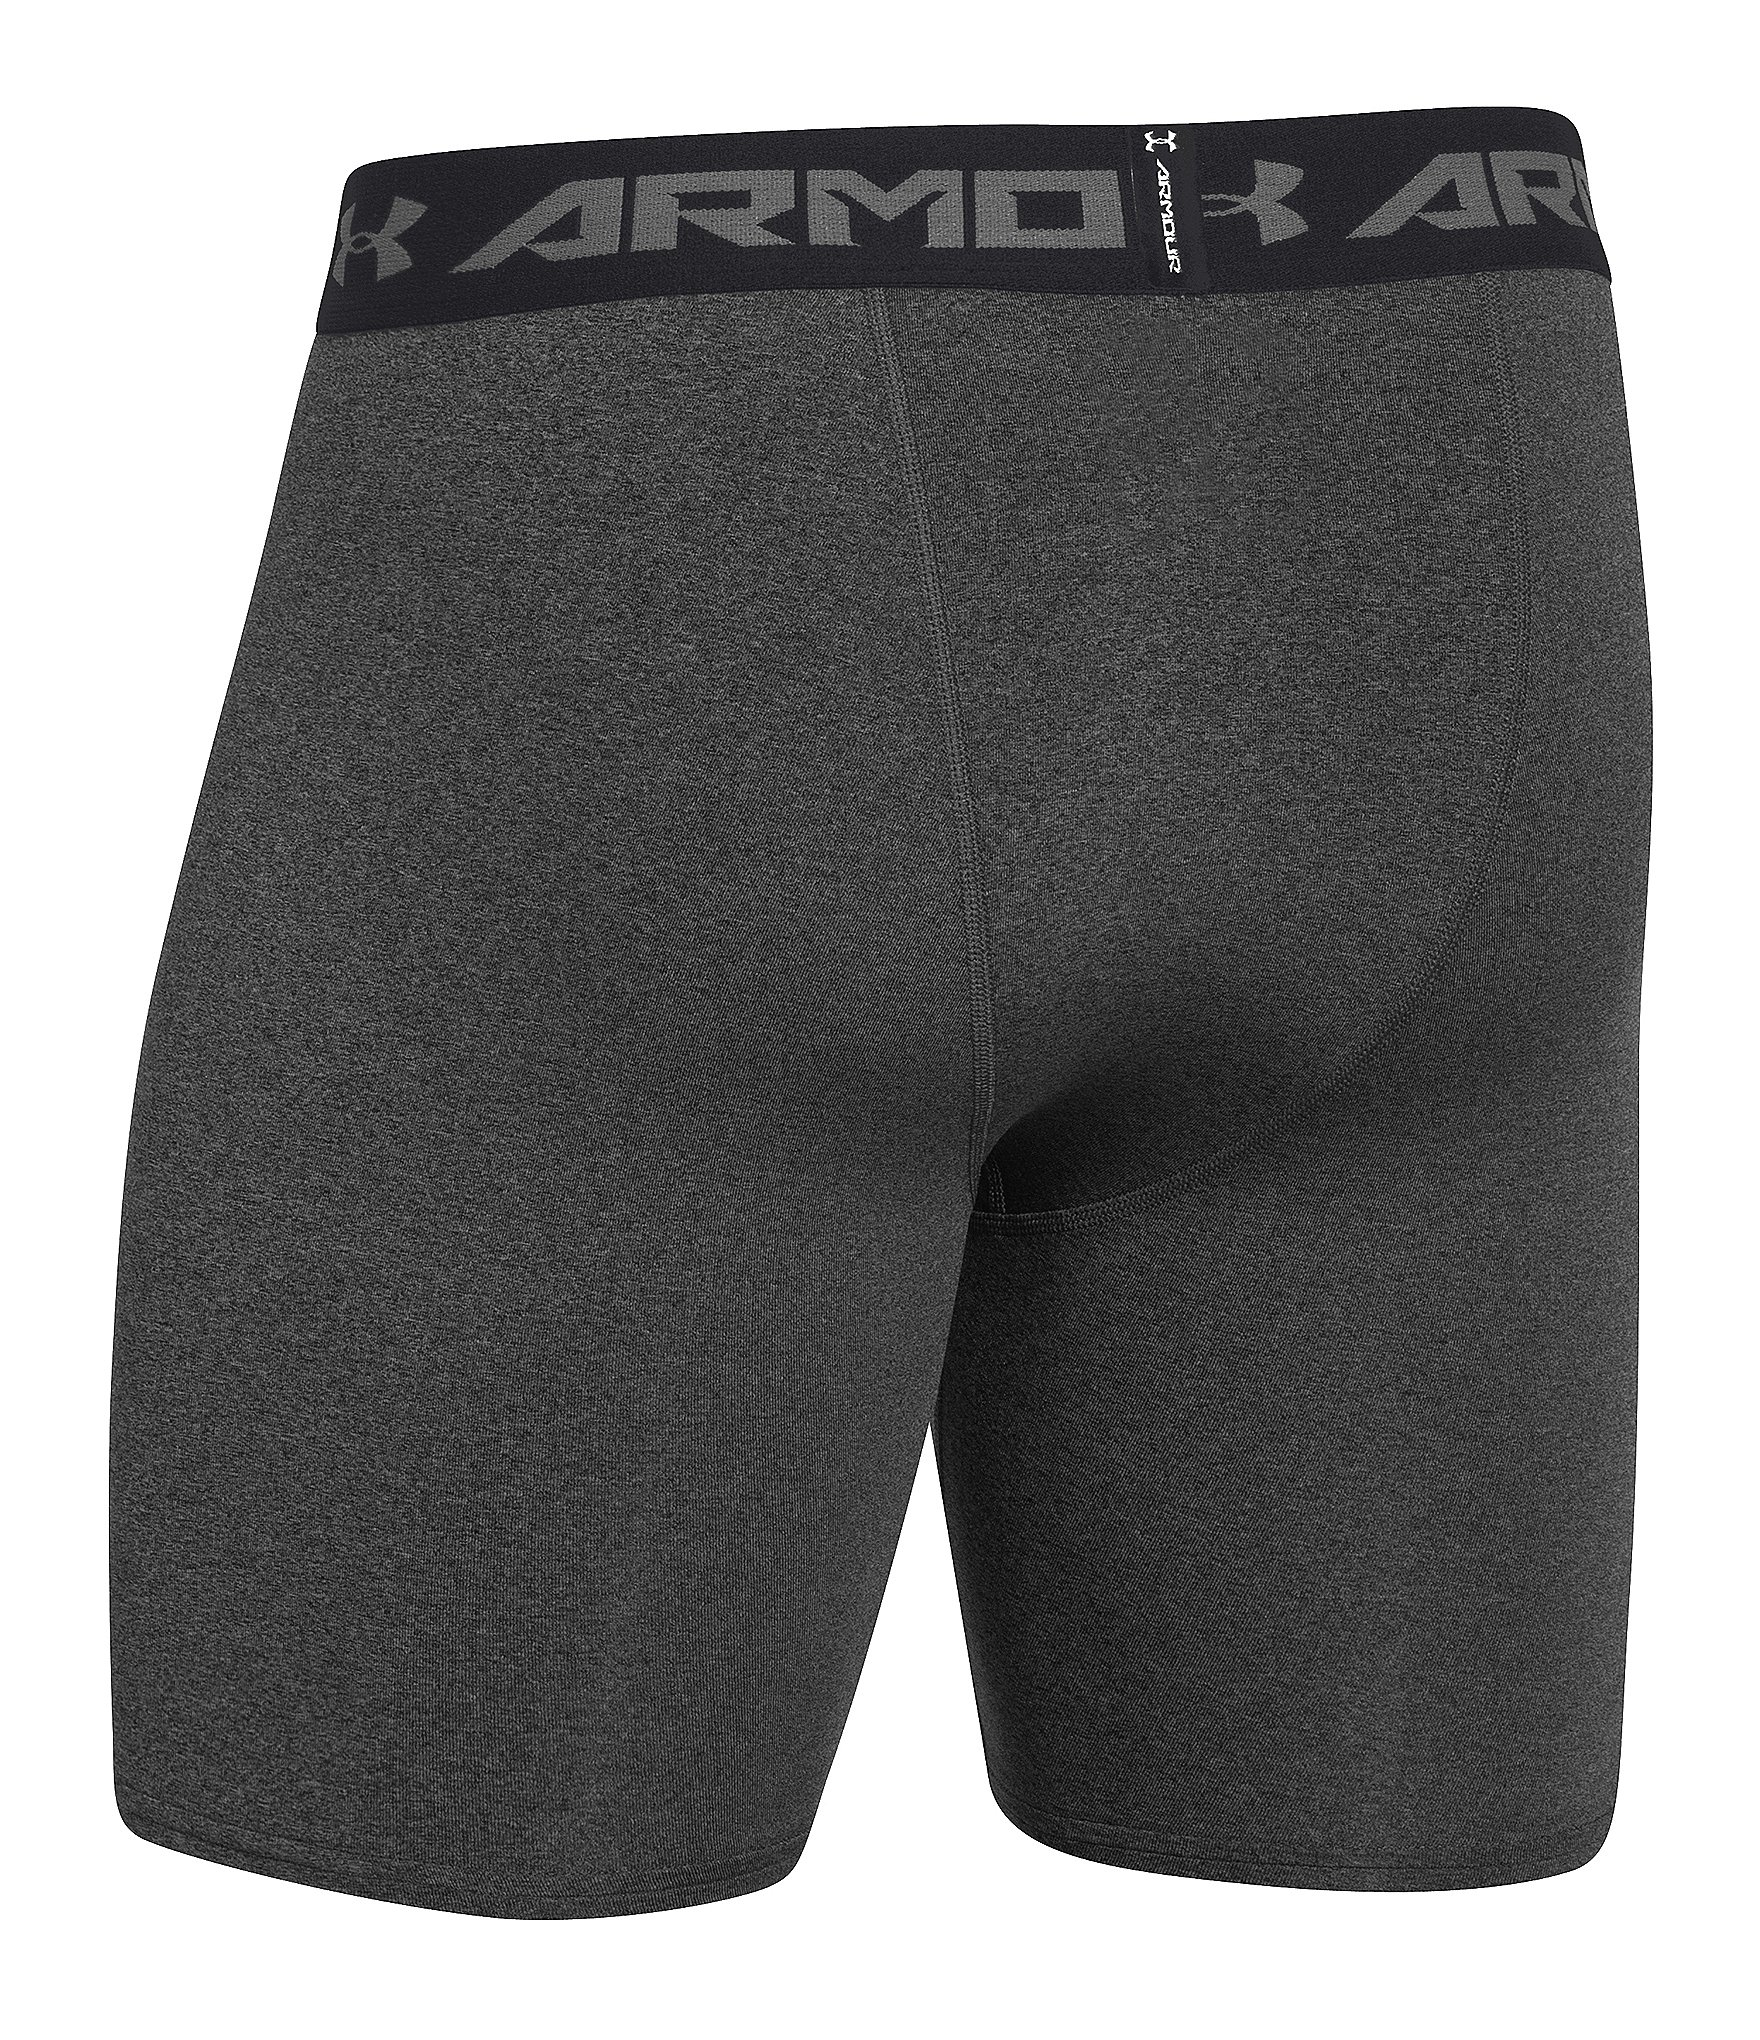 Under Armour Heatgear Armour Compression Mid Shorts In Black For Men Carbon Heather Black Lyst